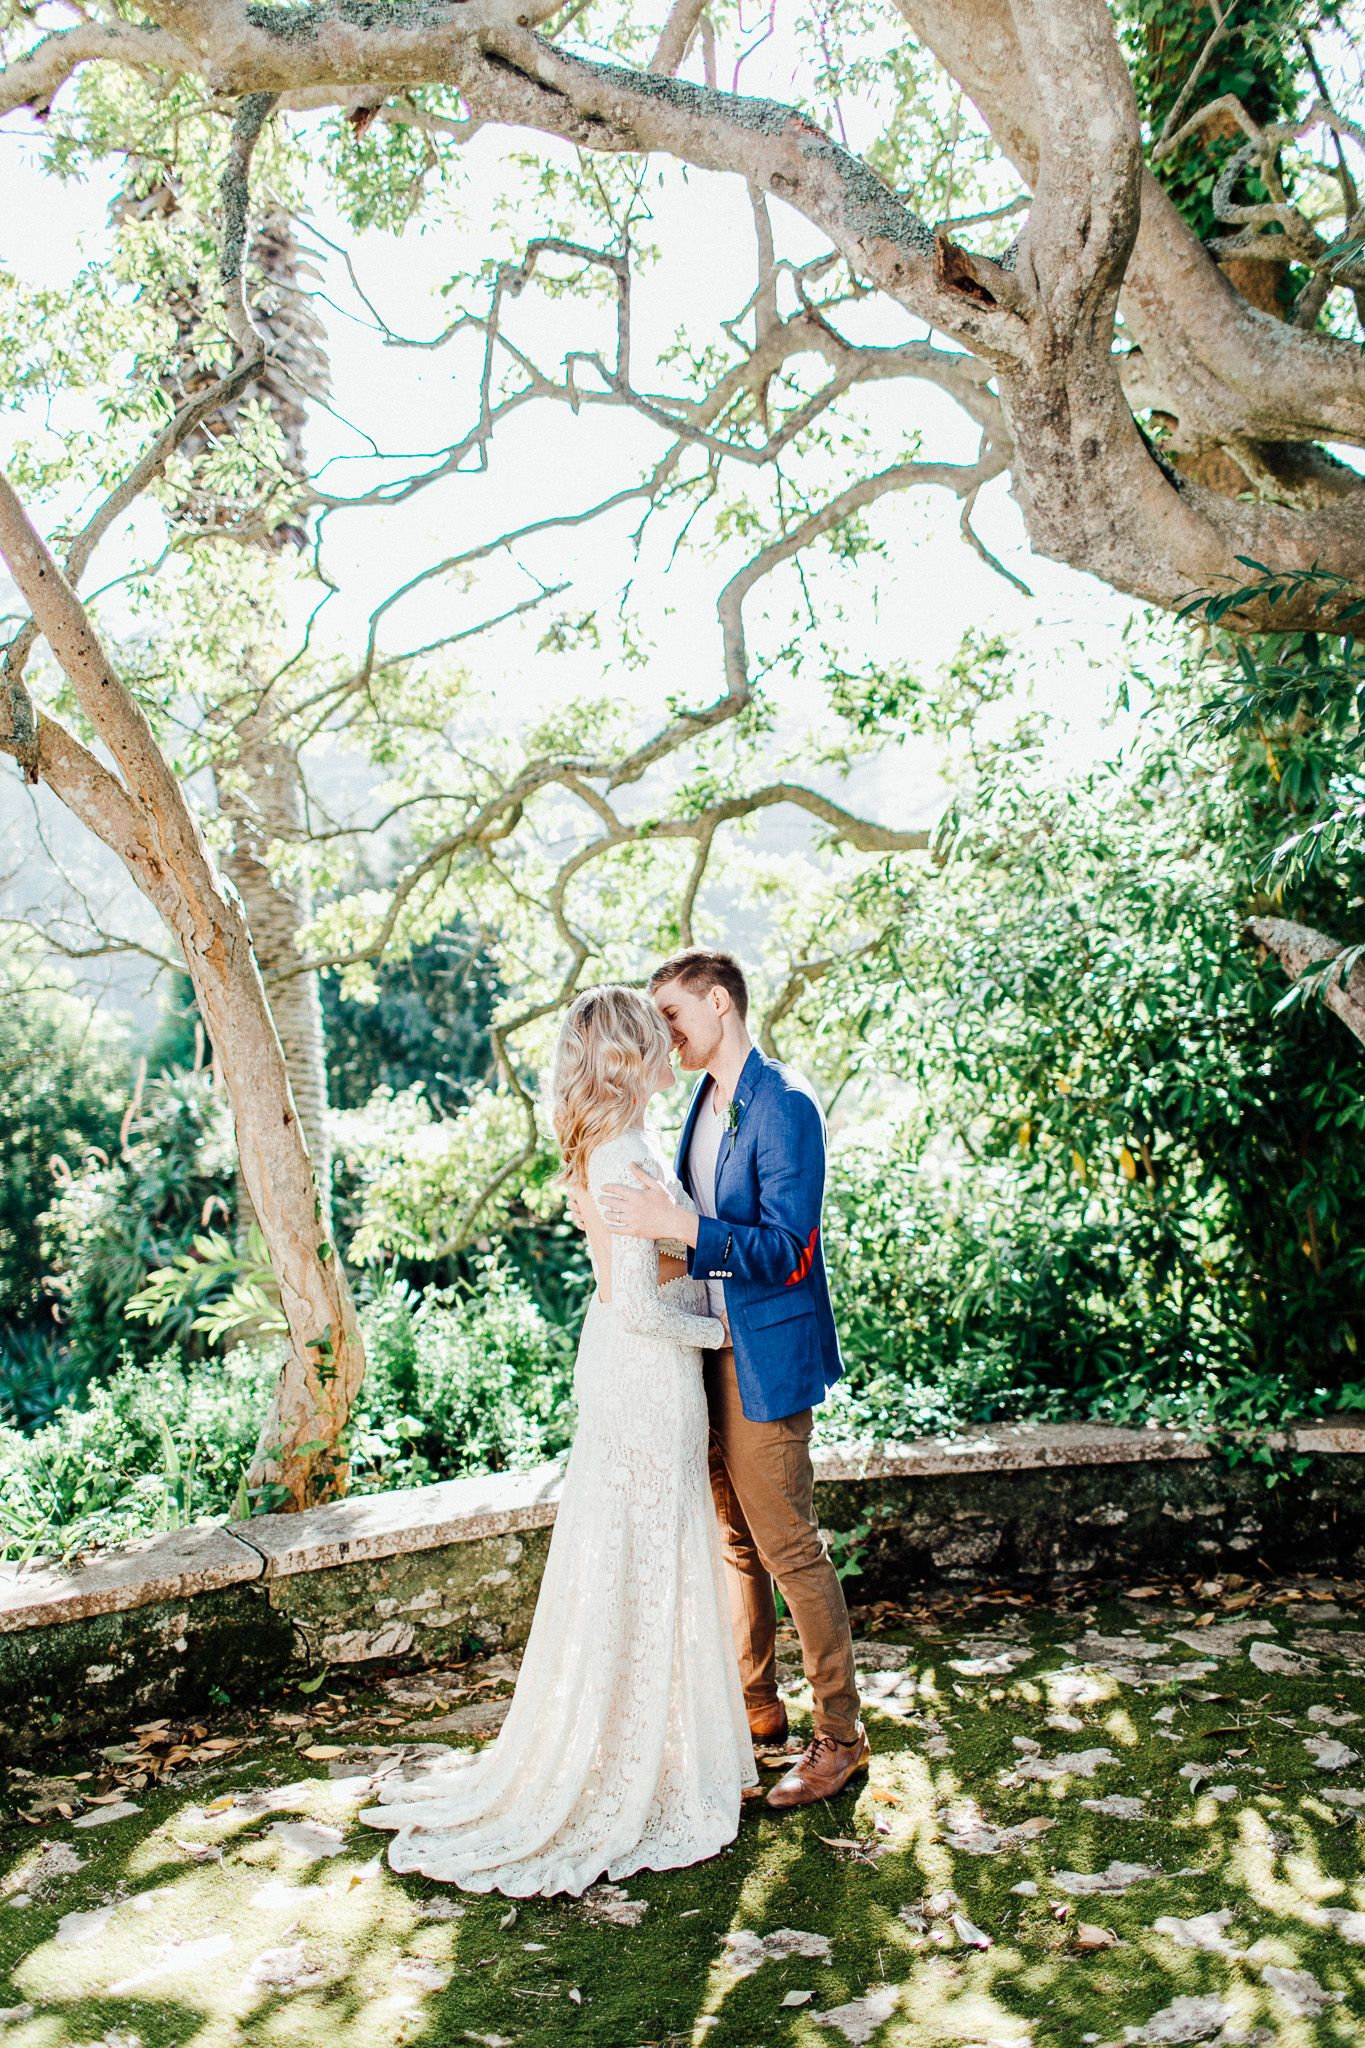 Hochzeit In Portugal Heiraten In Portugal In 5 Schritten Destination Wedding